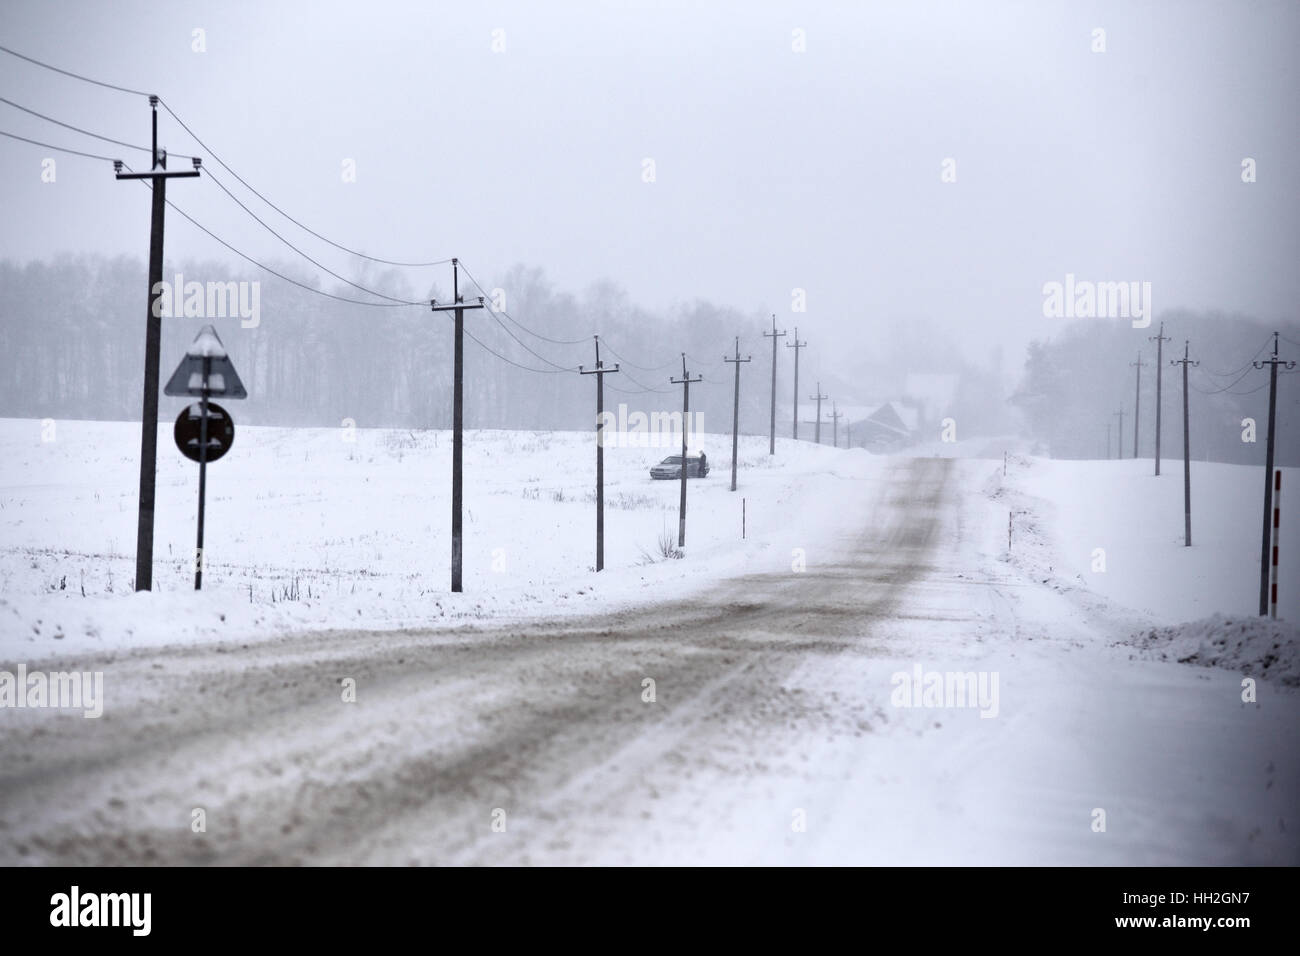 Snowfall and sleet on winter road. Ice snowy road. Winter snowstorm. Black ice and blizzard. - Stock Image